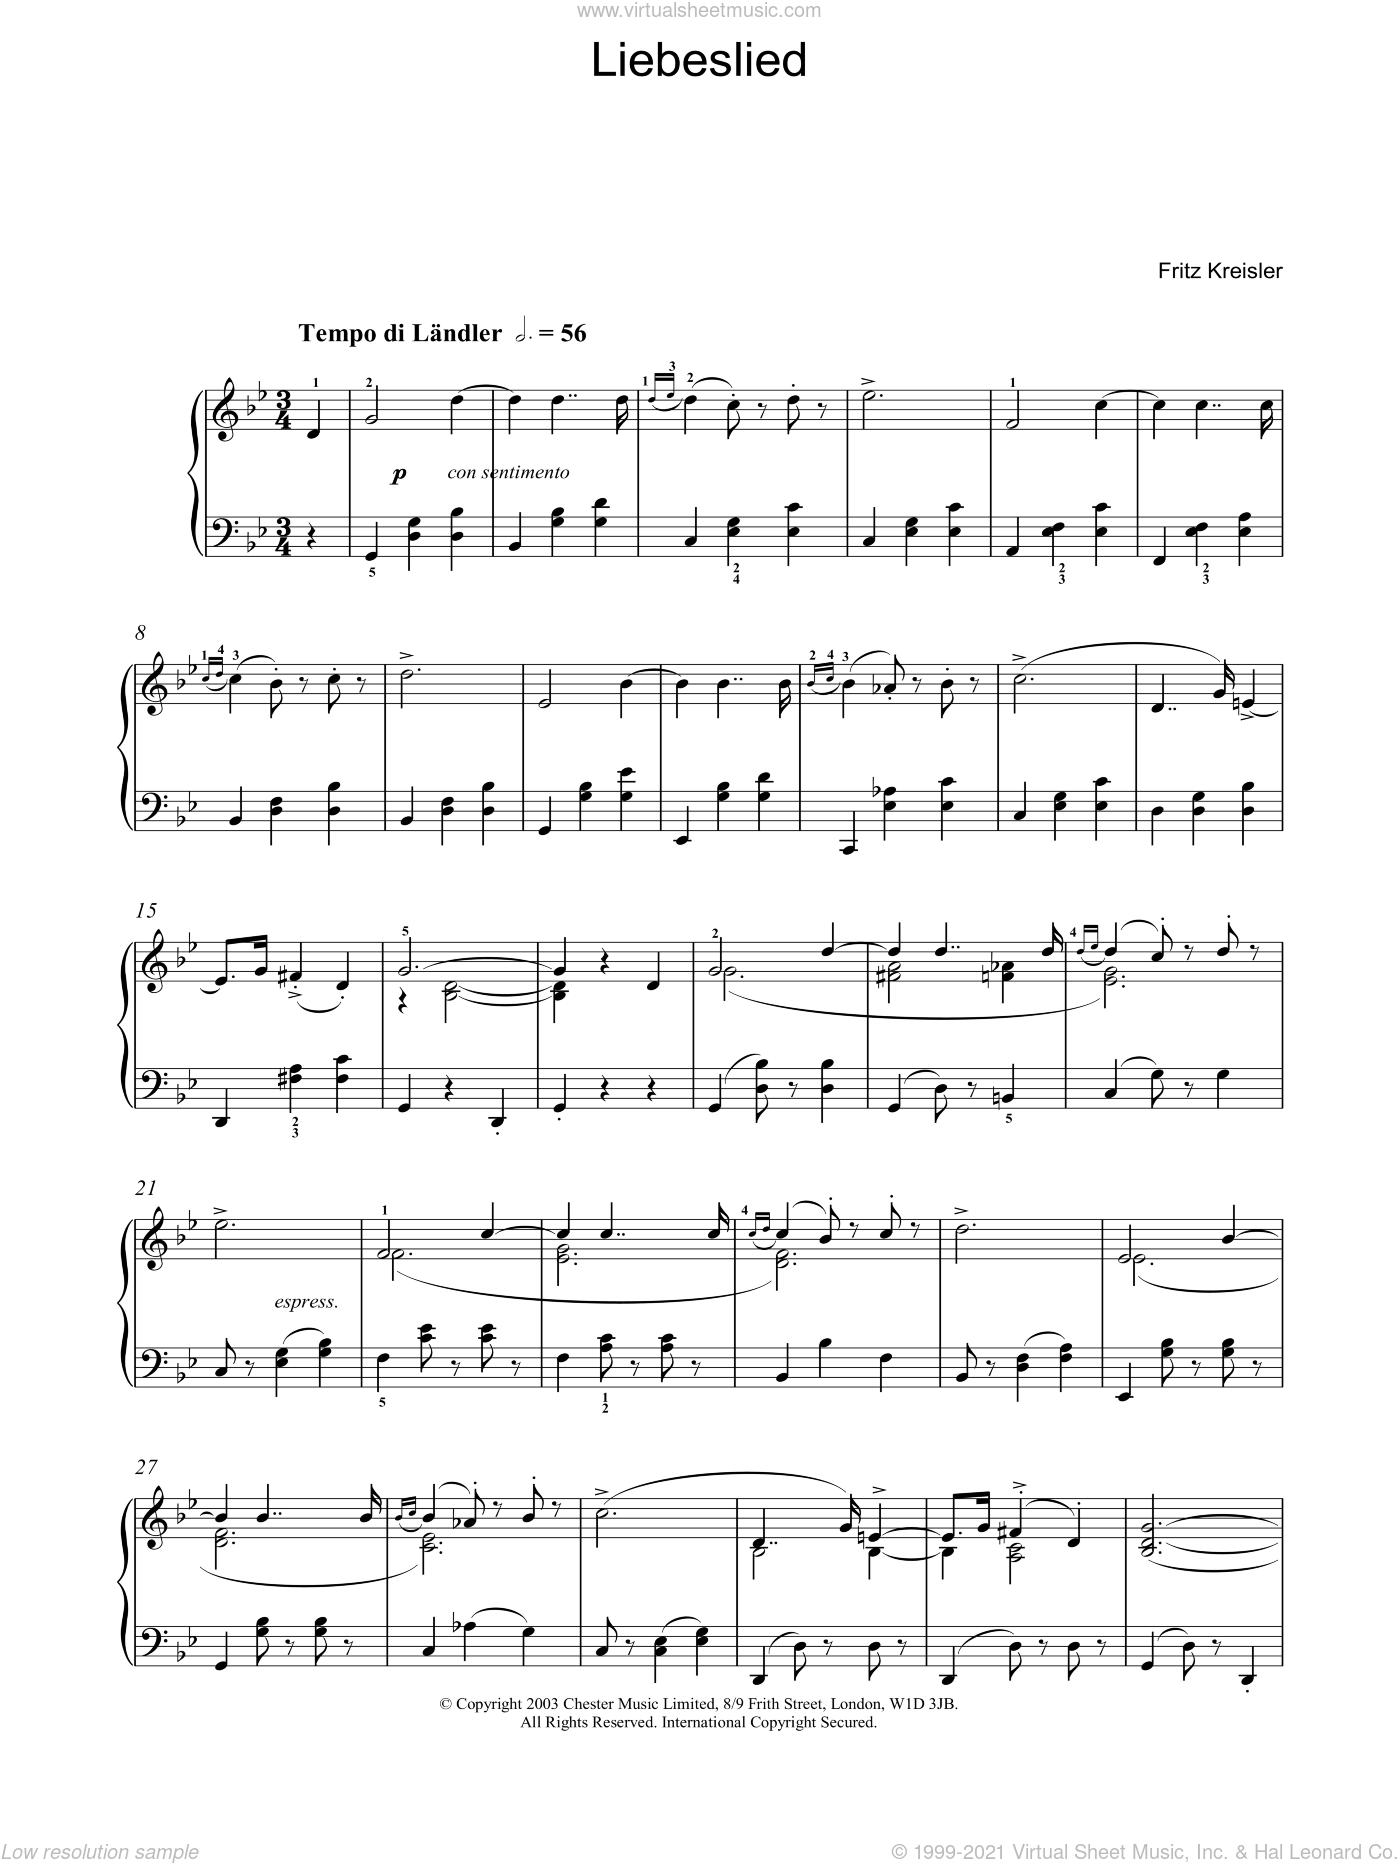 Liebeslied sheet music for piano solo by Fritz Kreisler